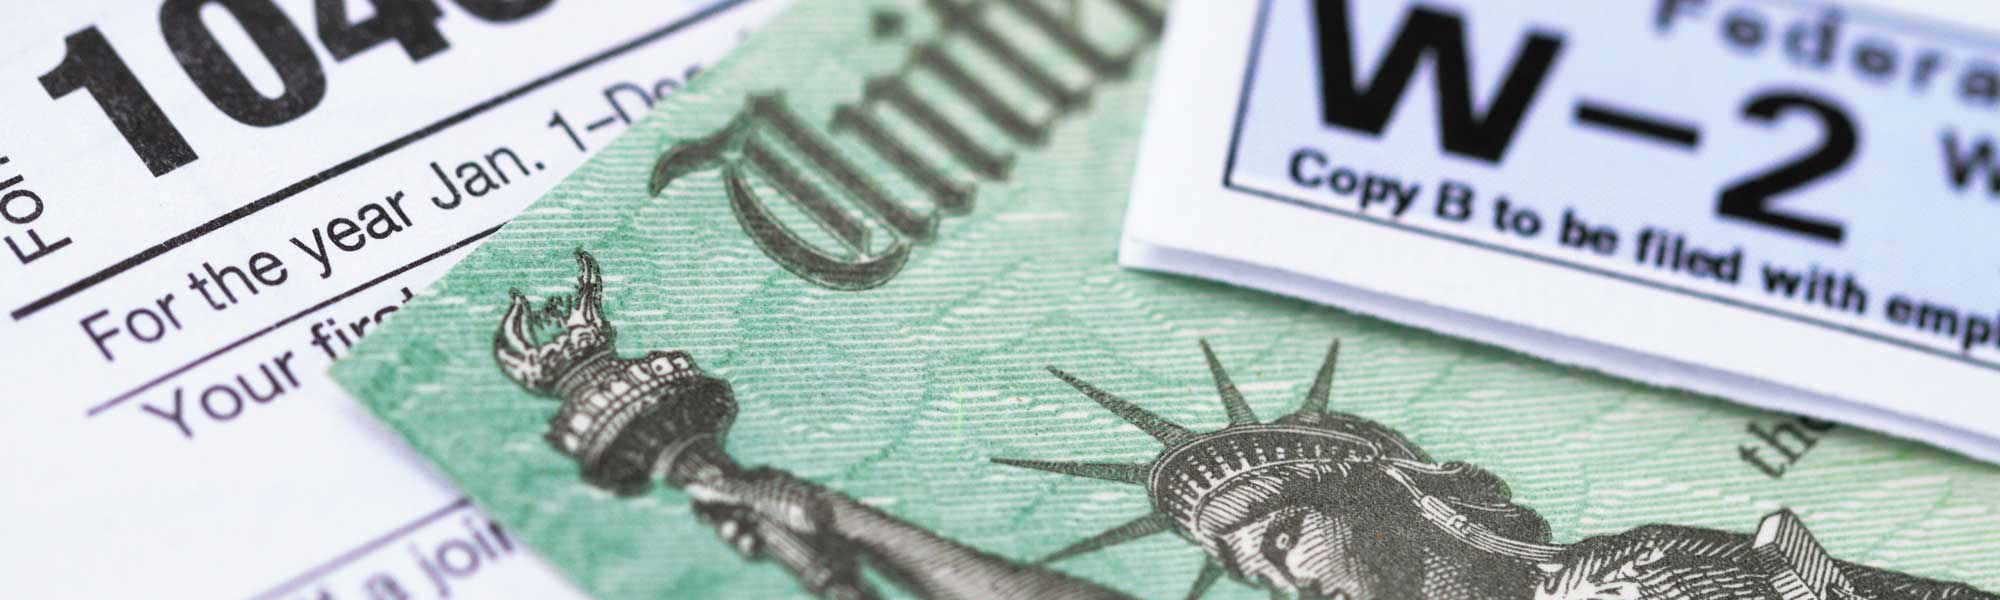 From Secure Printed Checks to IRS Approved Tax Forms